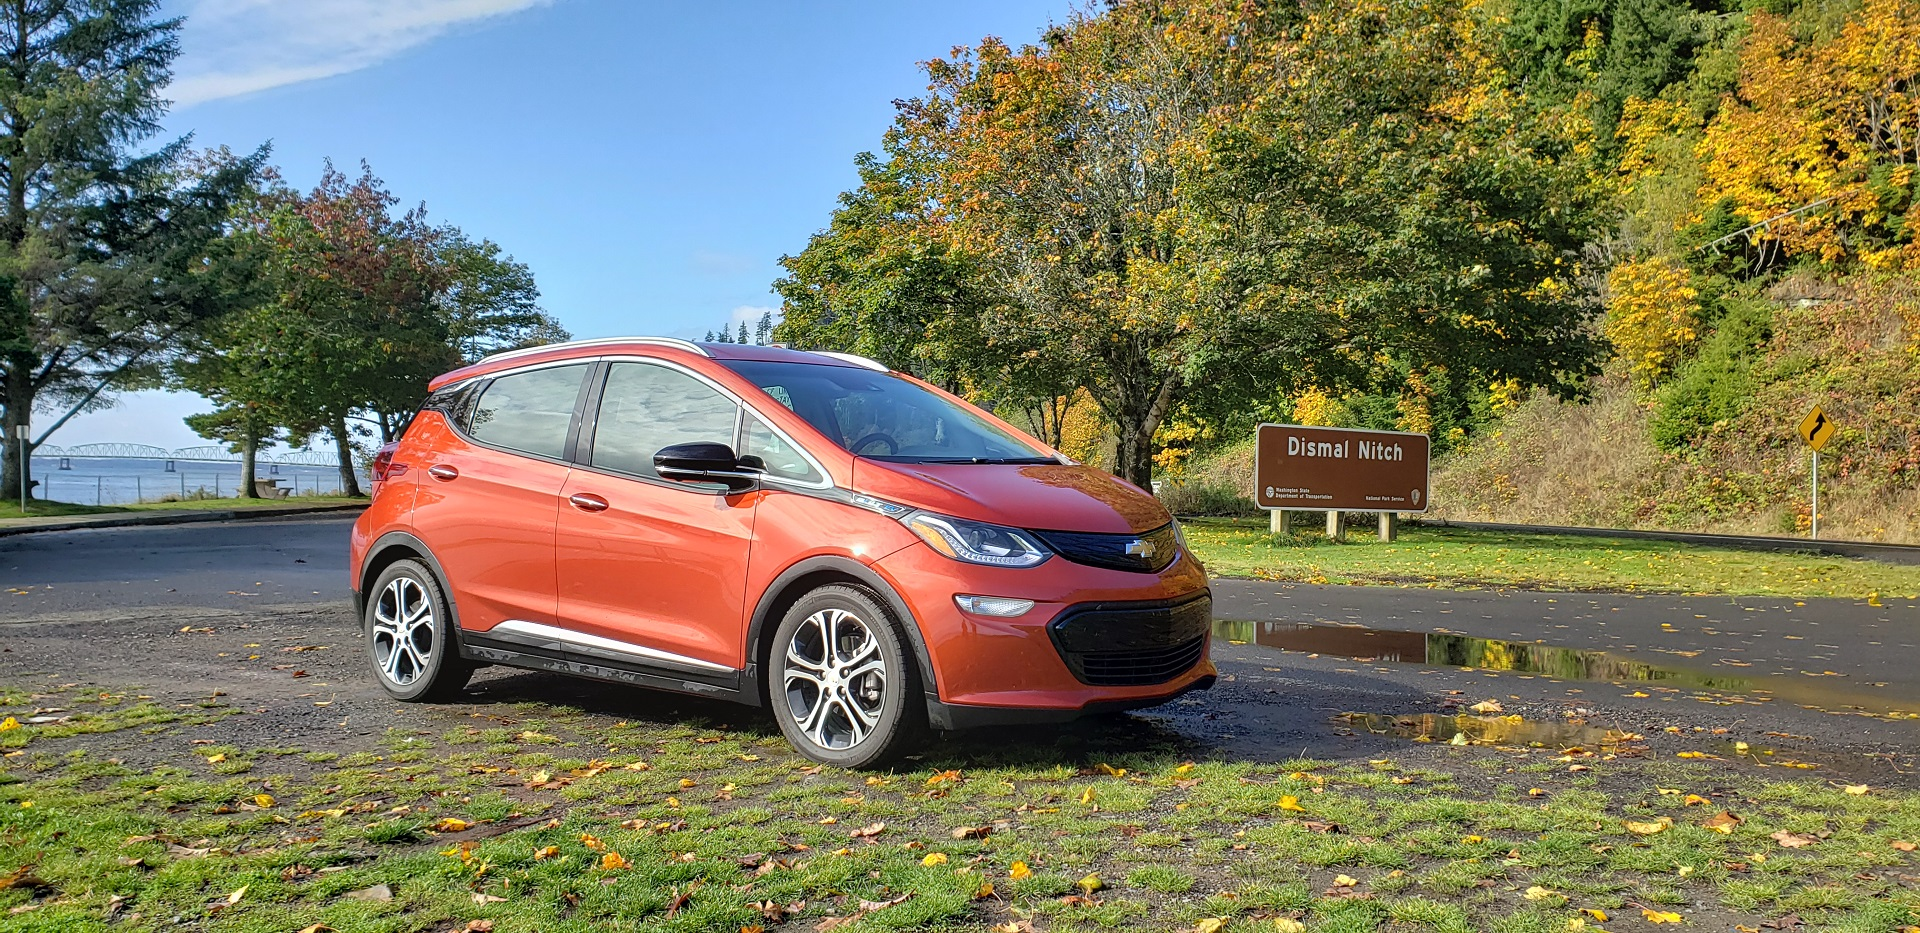 2020 Chevy Bolt Ev Lease Deal Less Than 200 Per Month For Costco Members